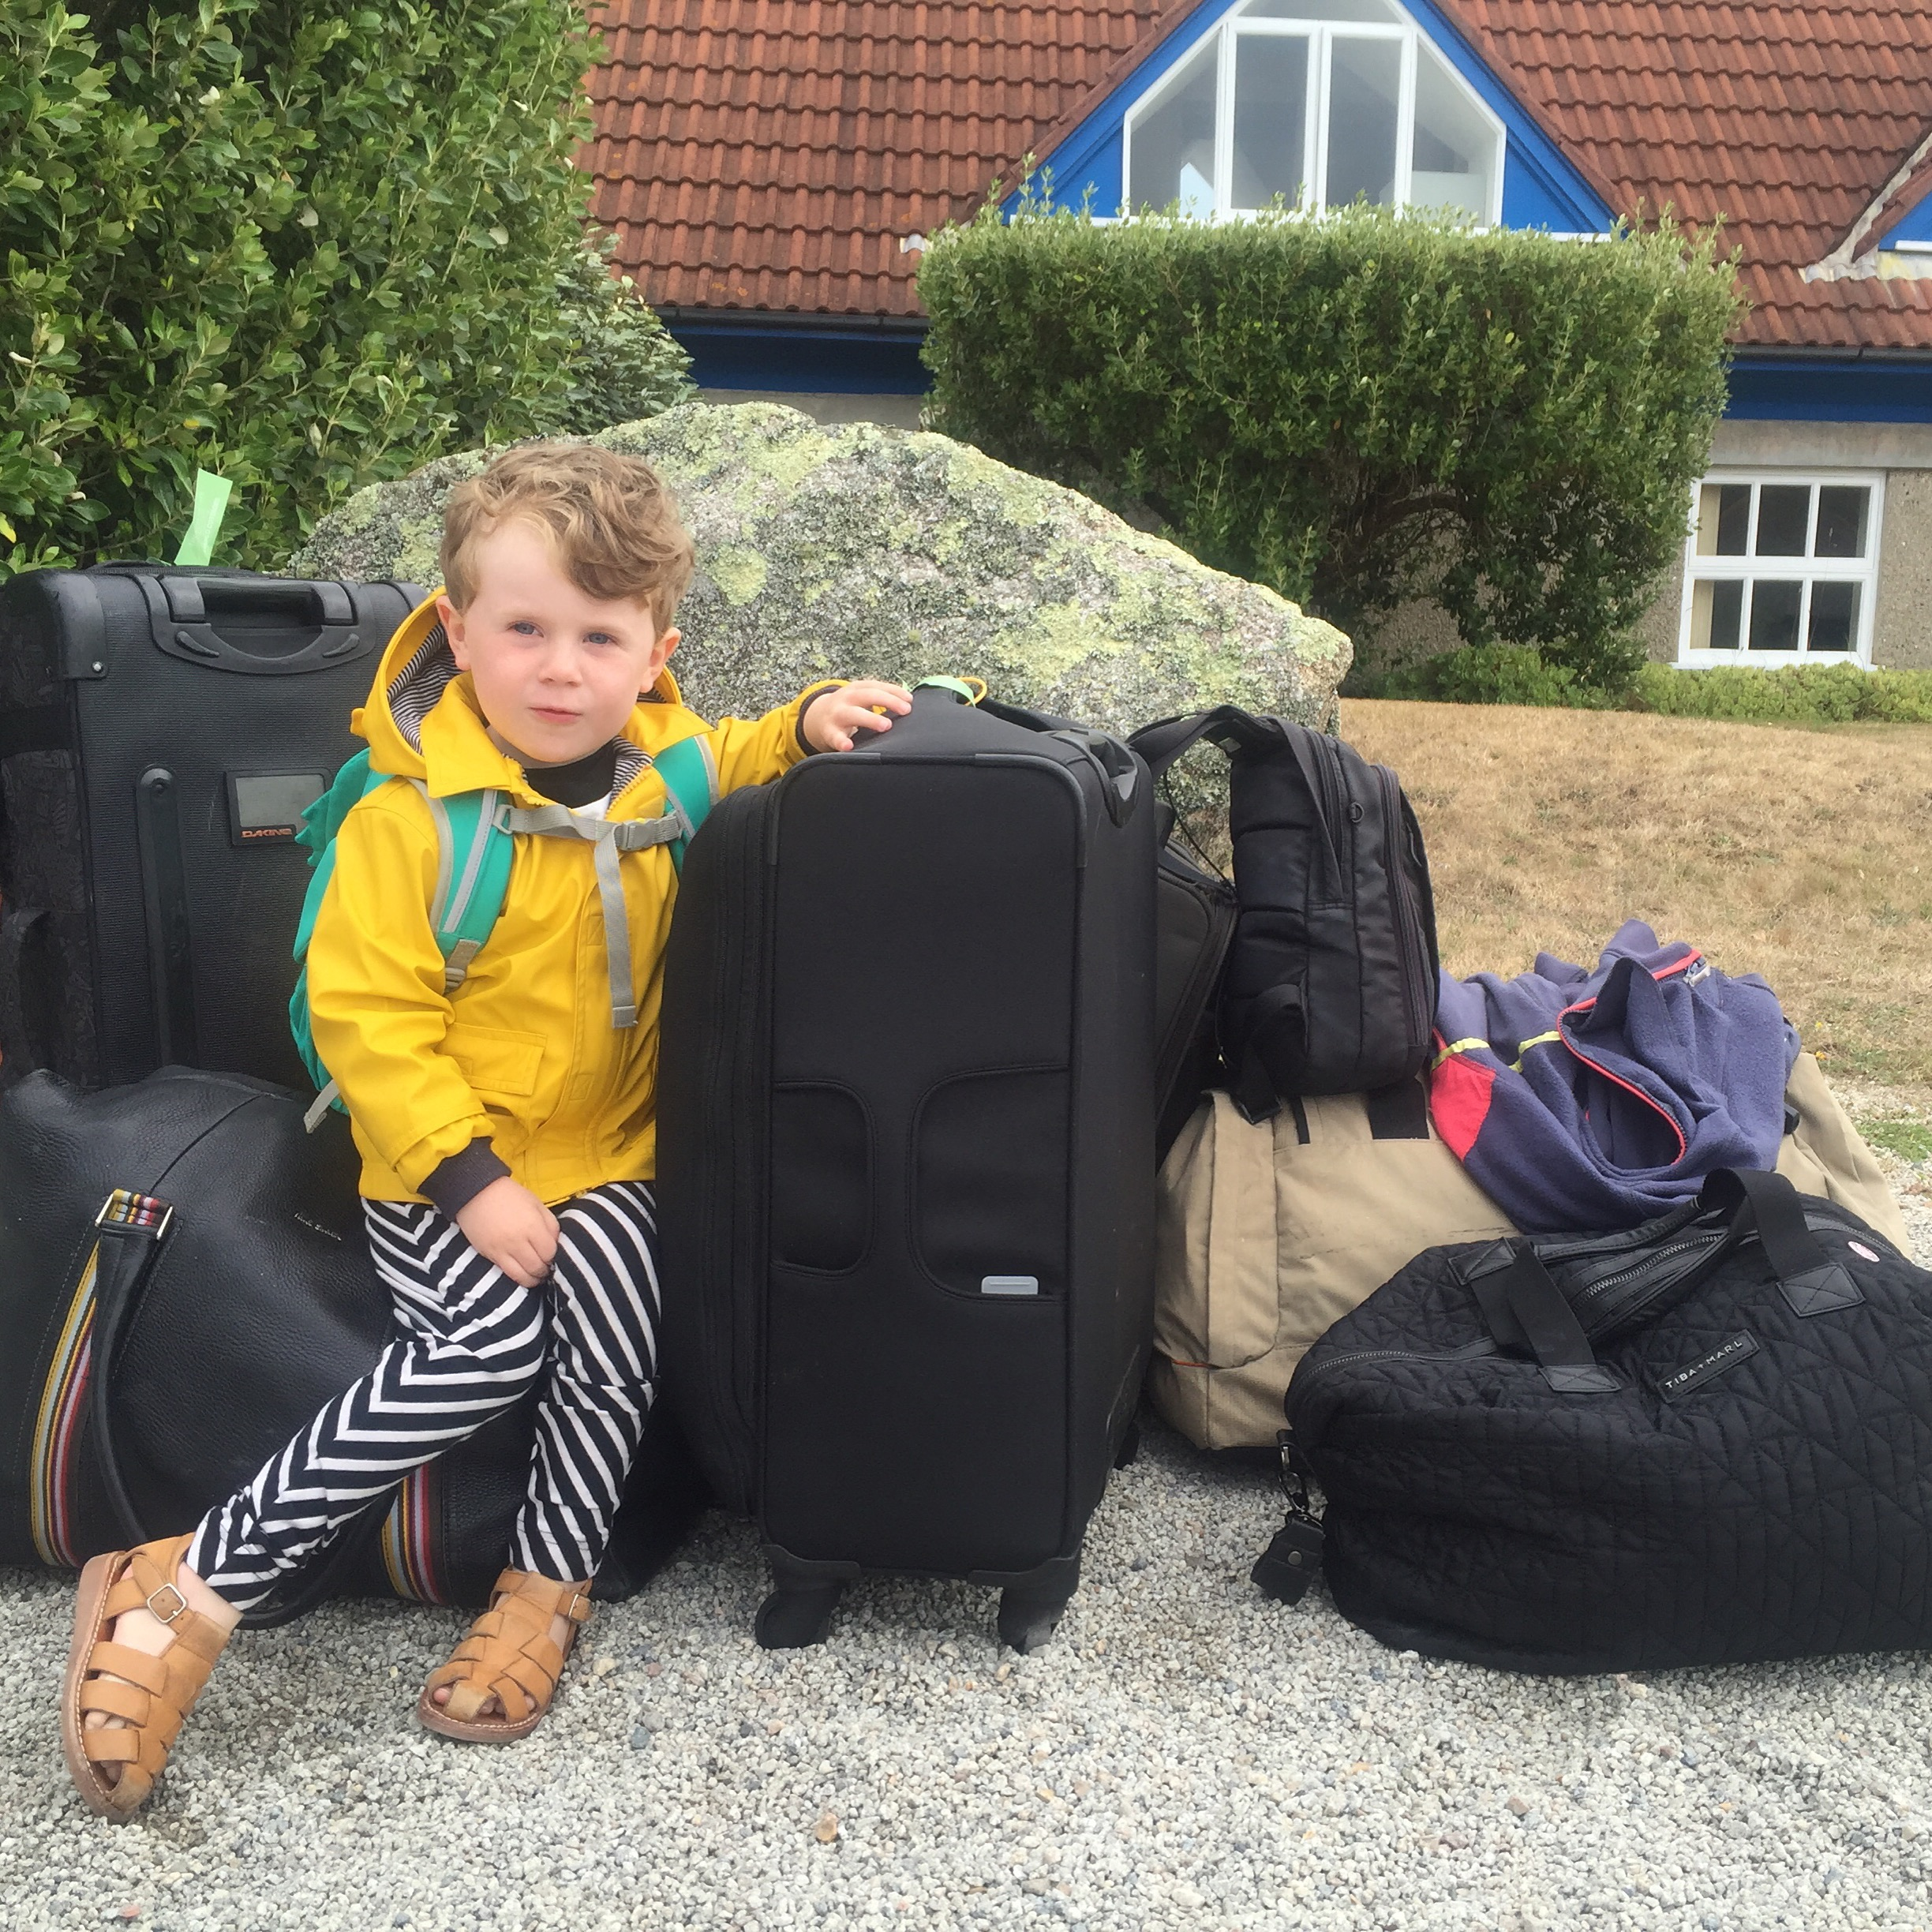 Travelling light as usual